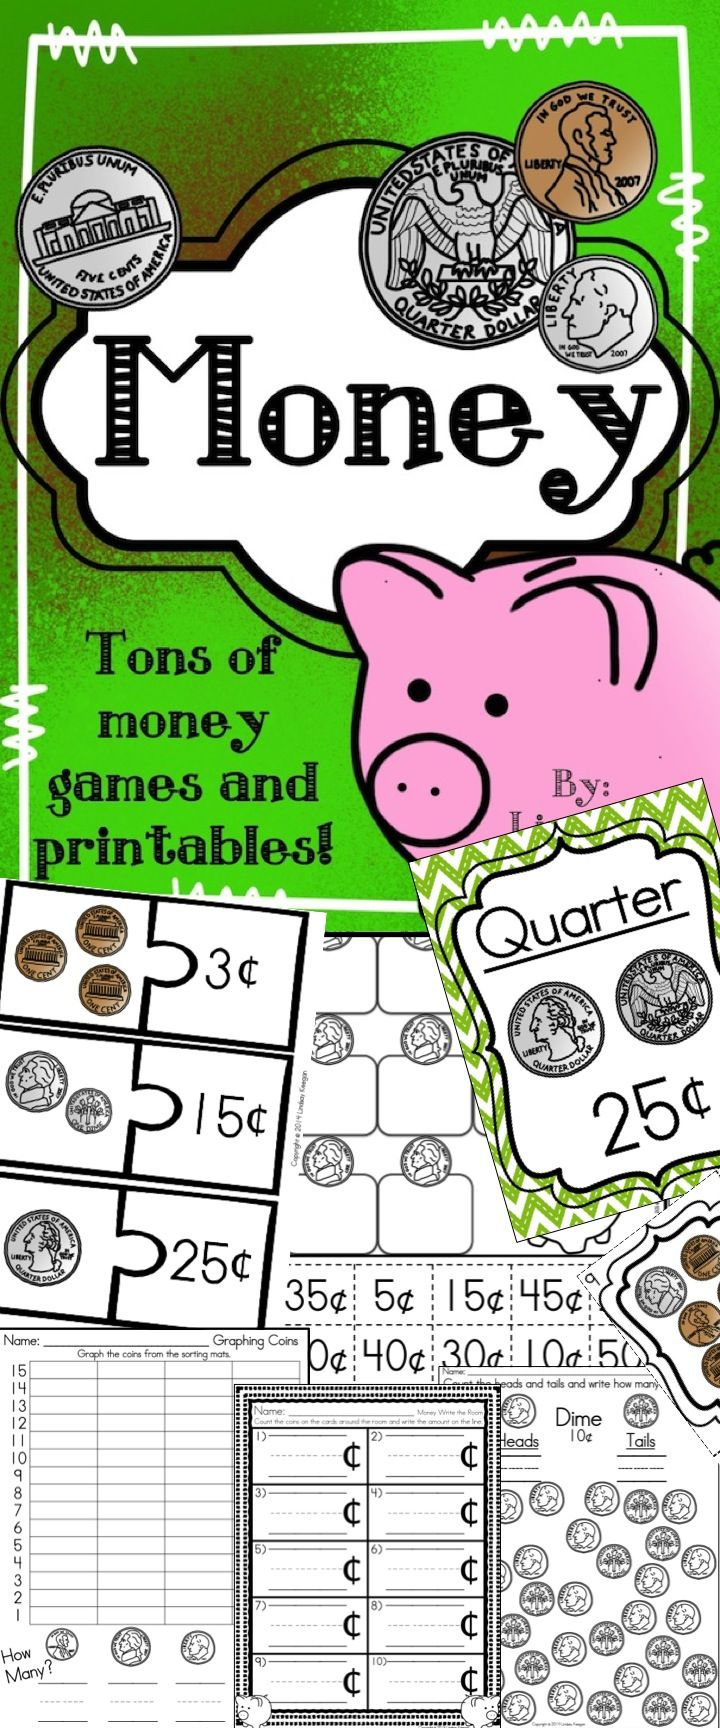 547 best money images on Pinterest | Teaching math, Counting money ...